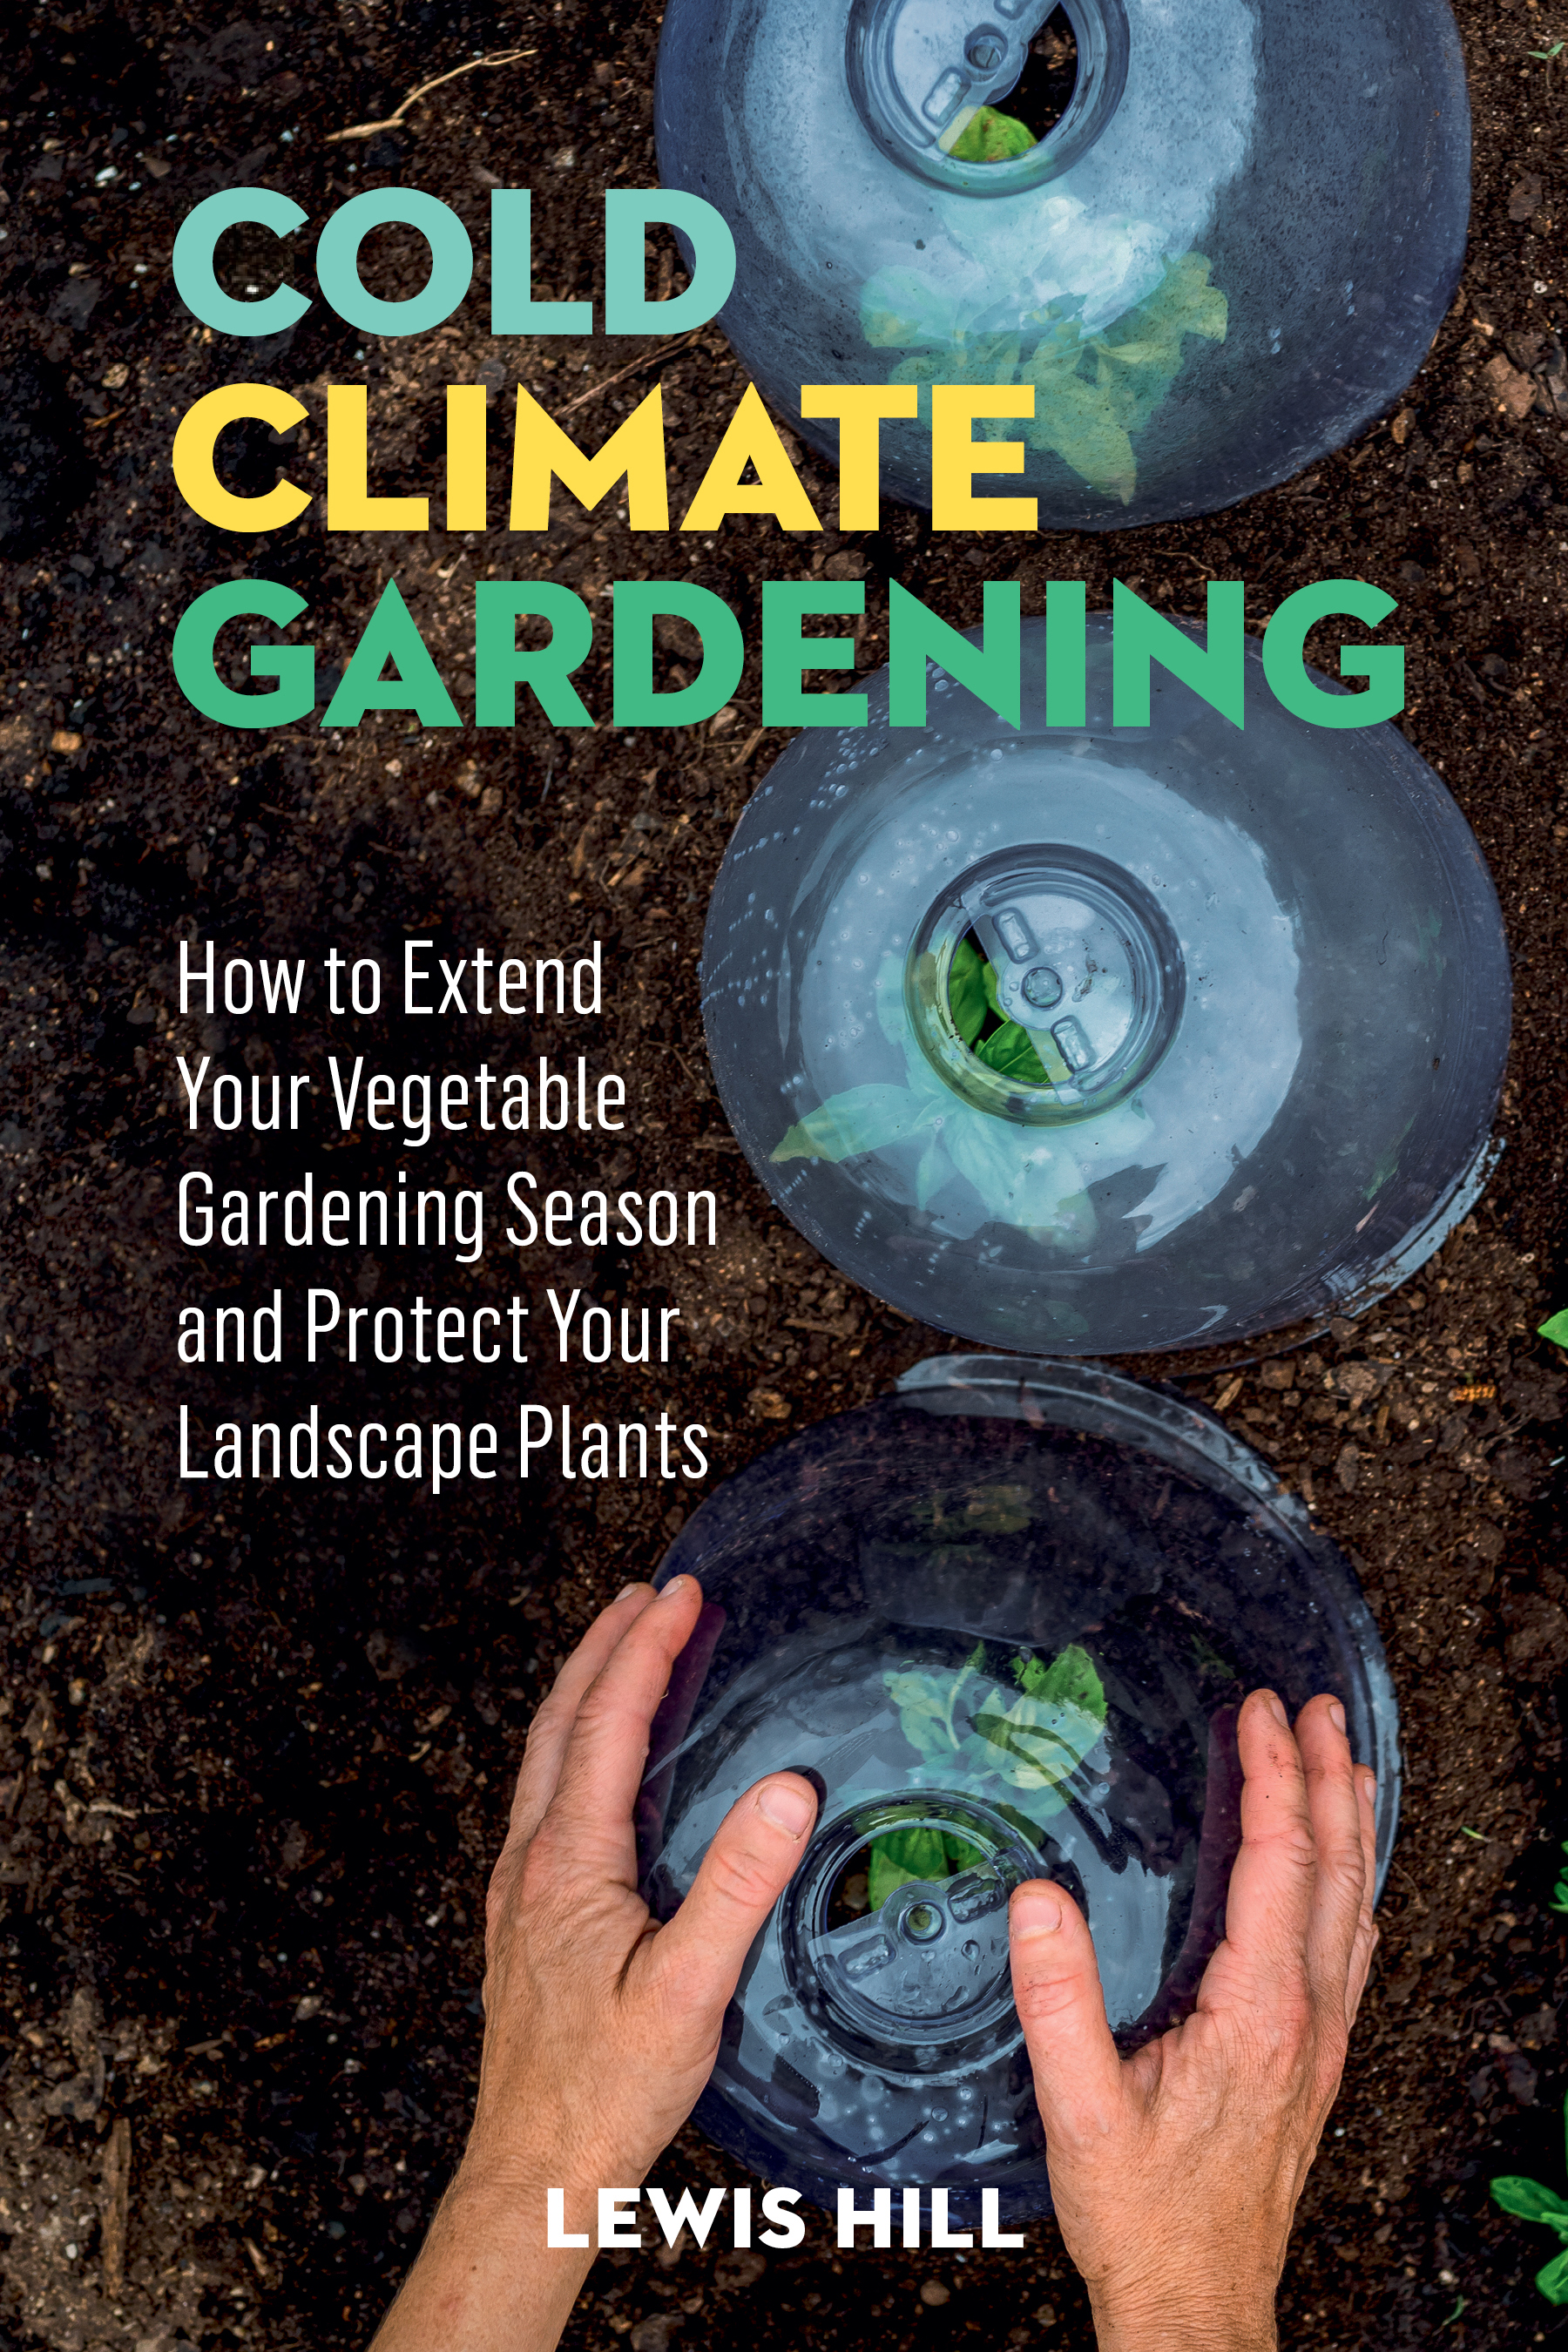 Cold-Climate Gardening How to Extend Your Growing Season by at Least 30 Days - Lewis Hill